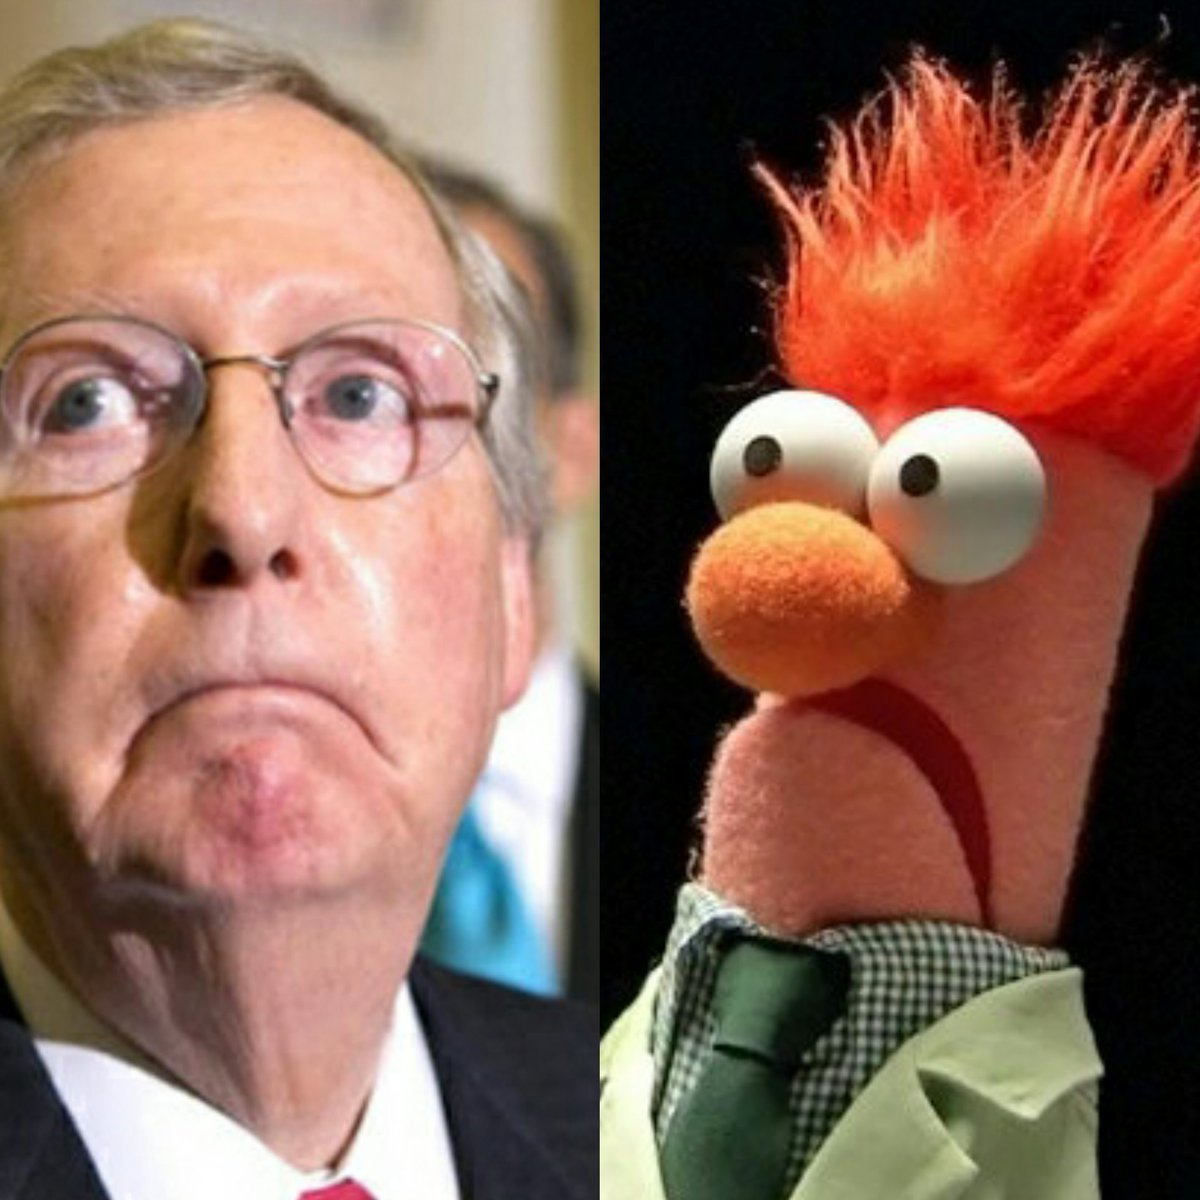 They found a picture of a Young Mitch Mcconnell...